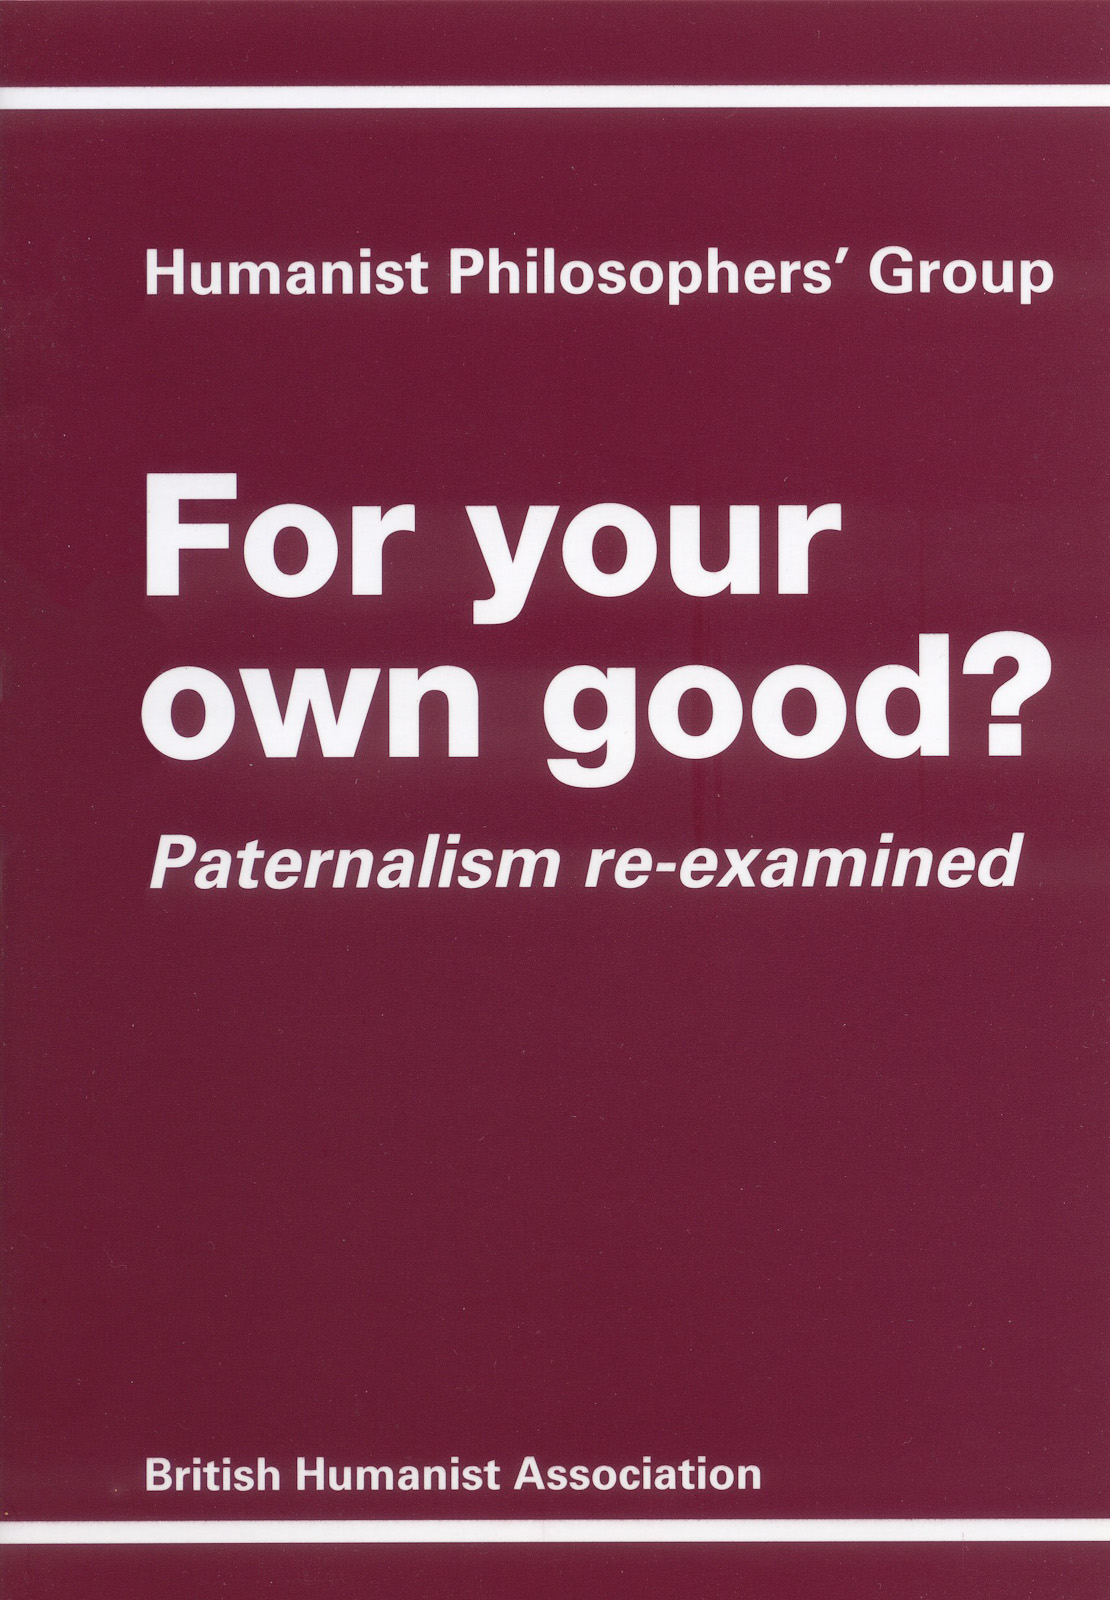 philosophy books british humanist association for